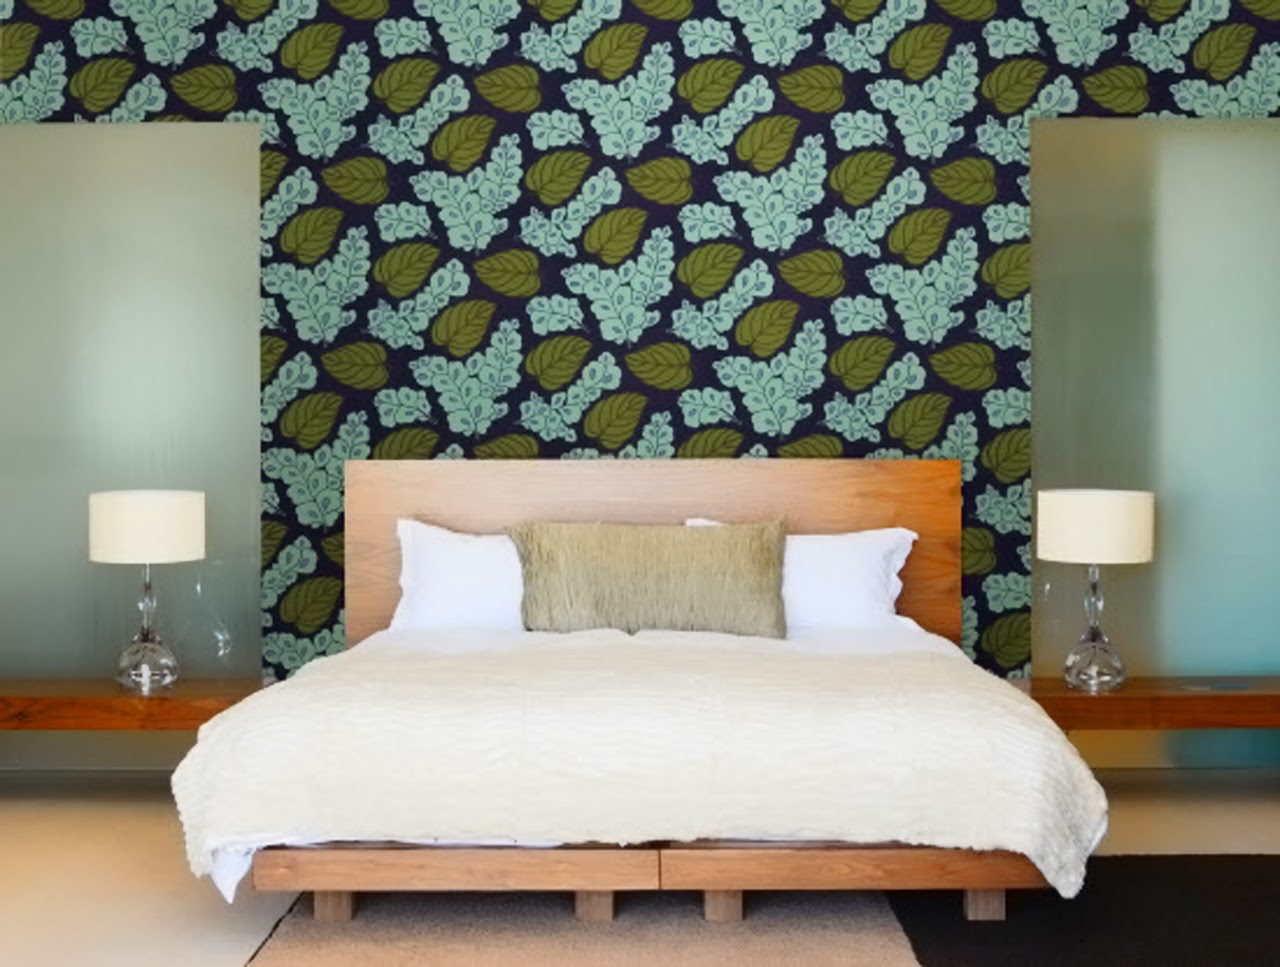 Sherwin Williams Wallpaper ~ WallpaperYork   Brows your wallpaper here   Best quality wallpapers